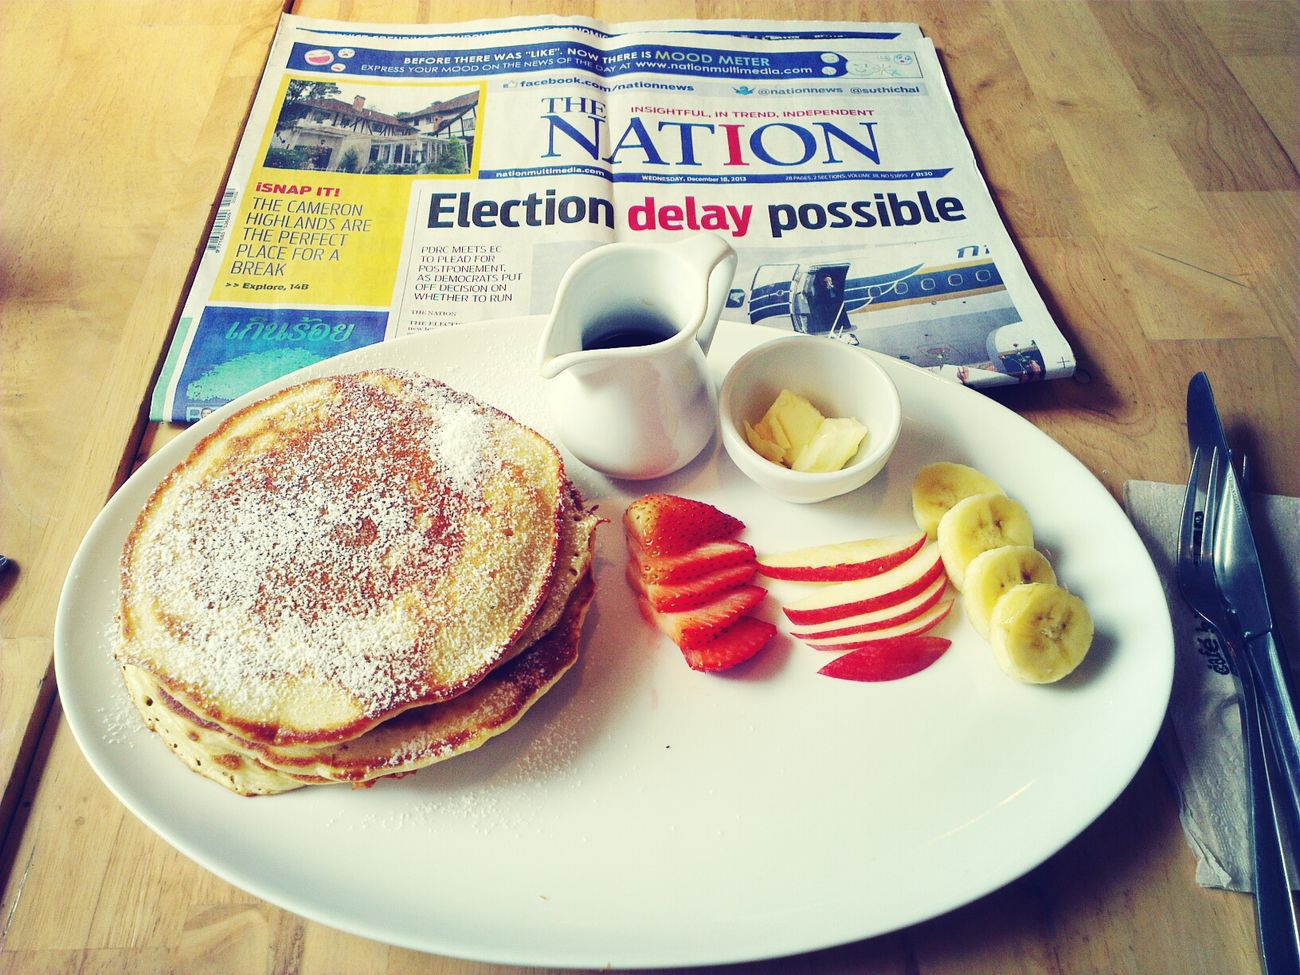 Buttermilk Pancakes on my last day, not venturing to far from the hotel.